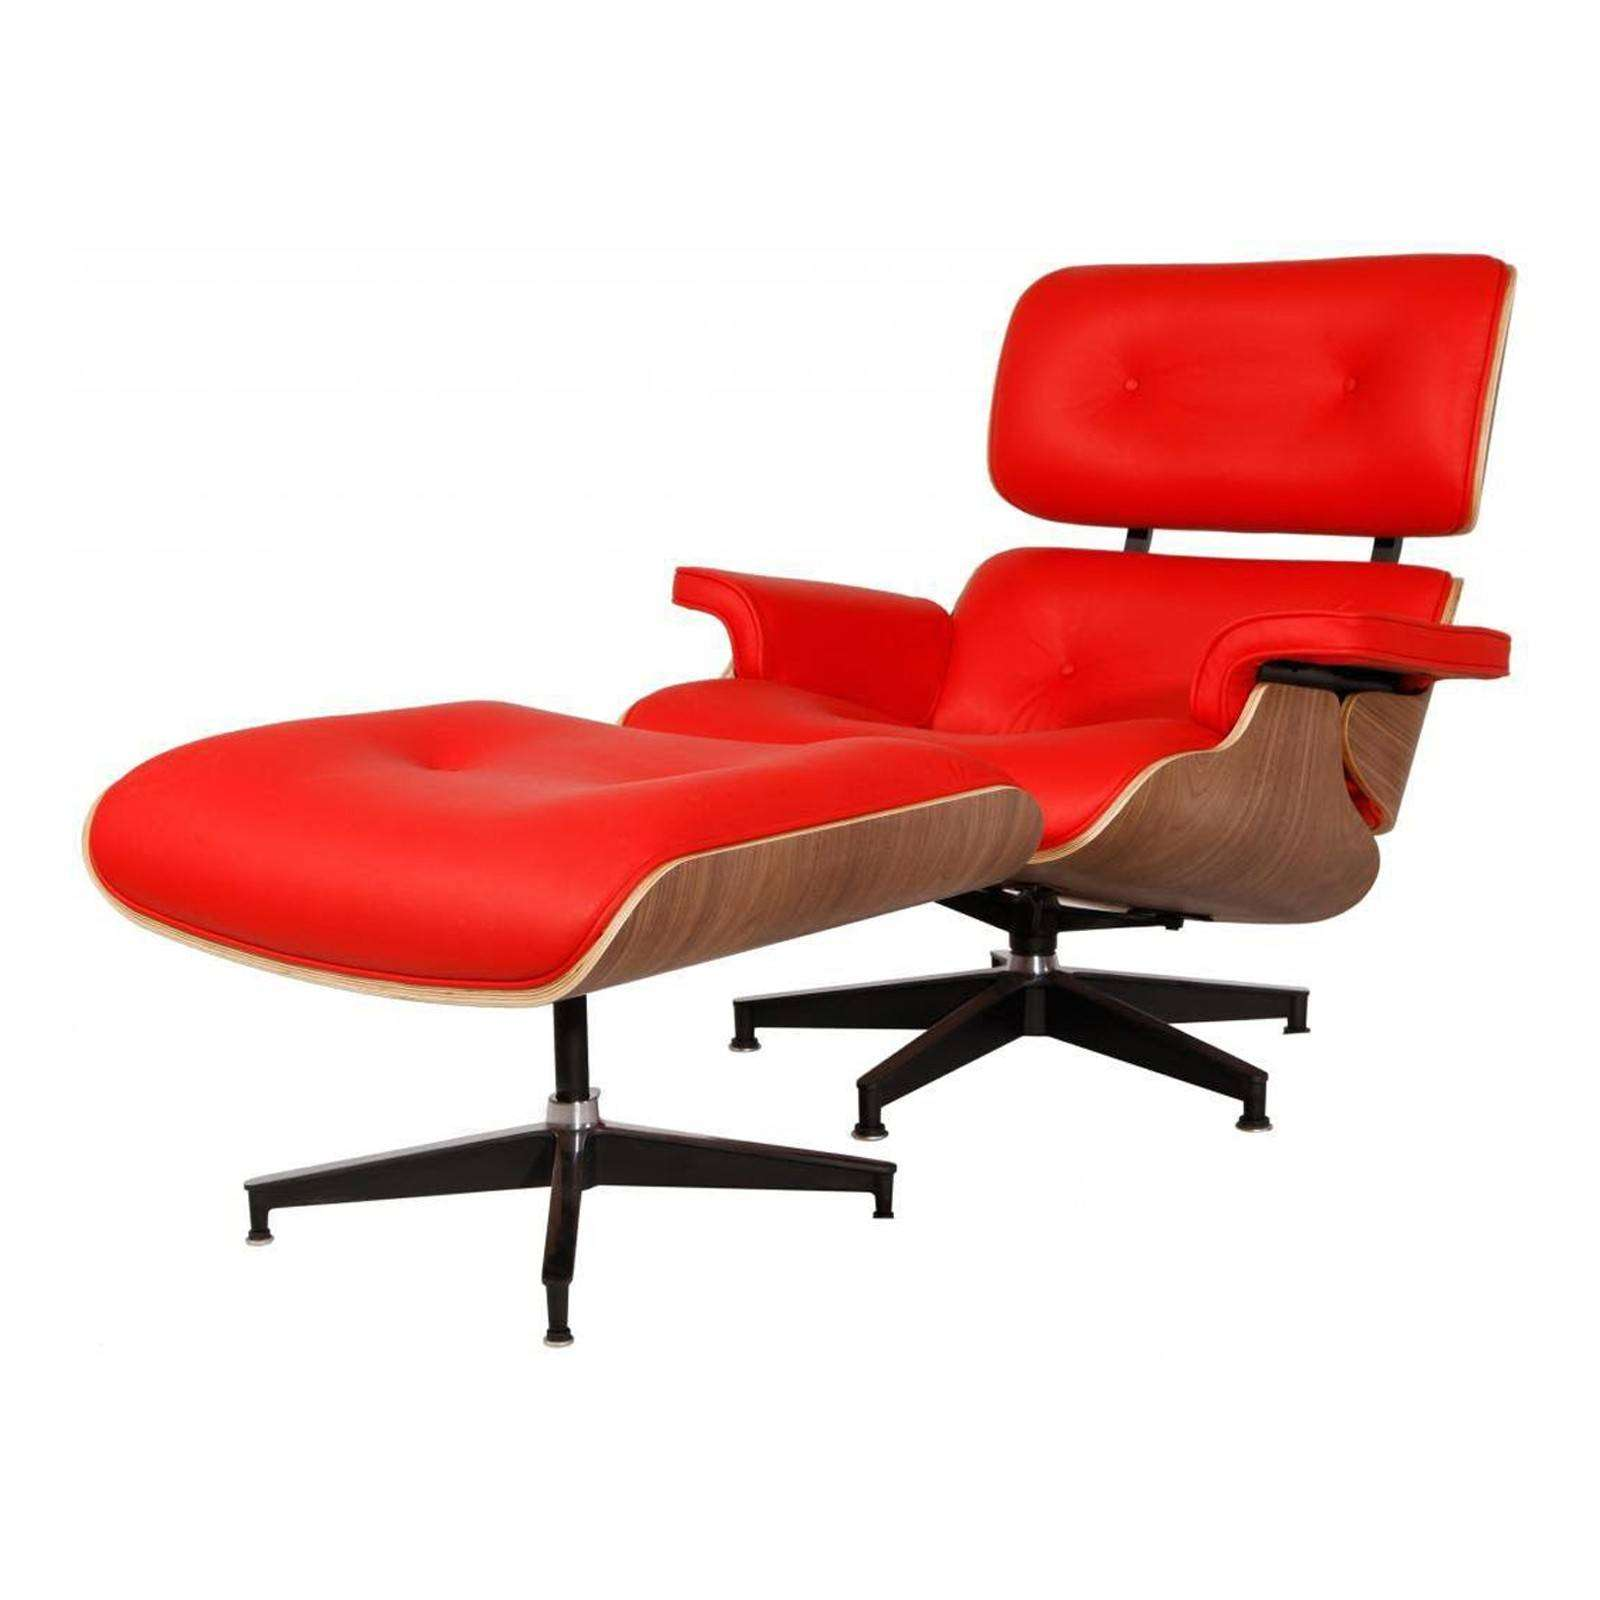 Image result for https://www.modterior.com/eames-office-chair-replica.html